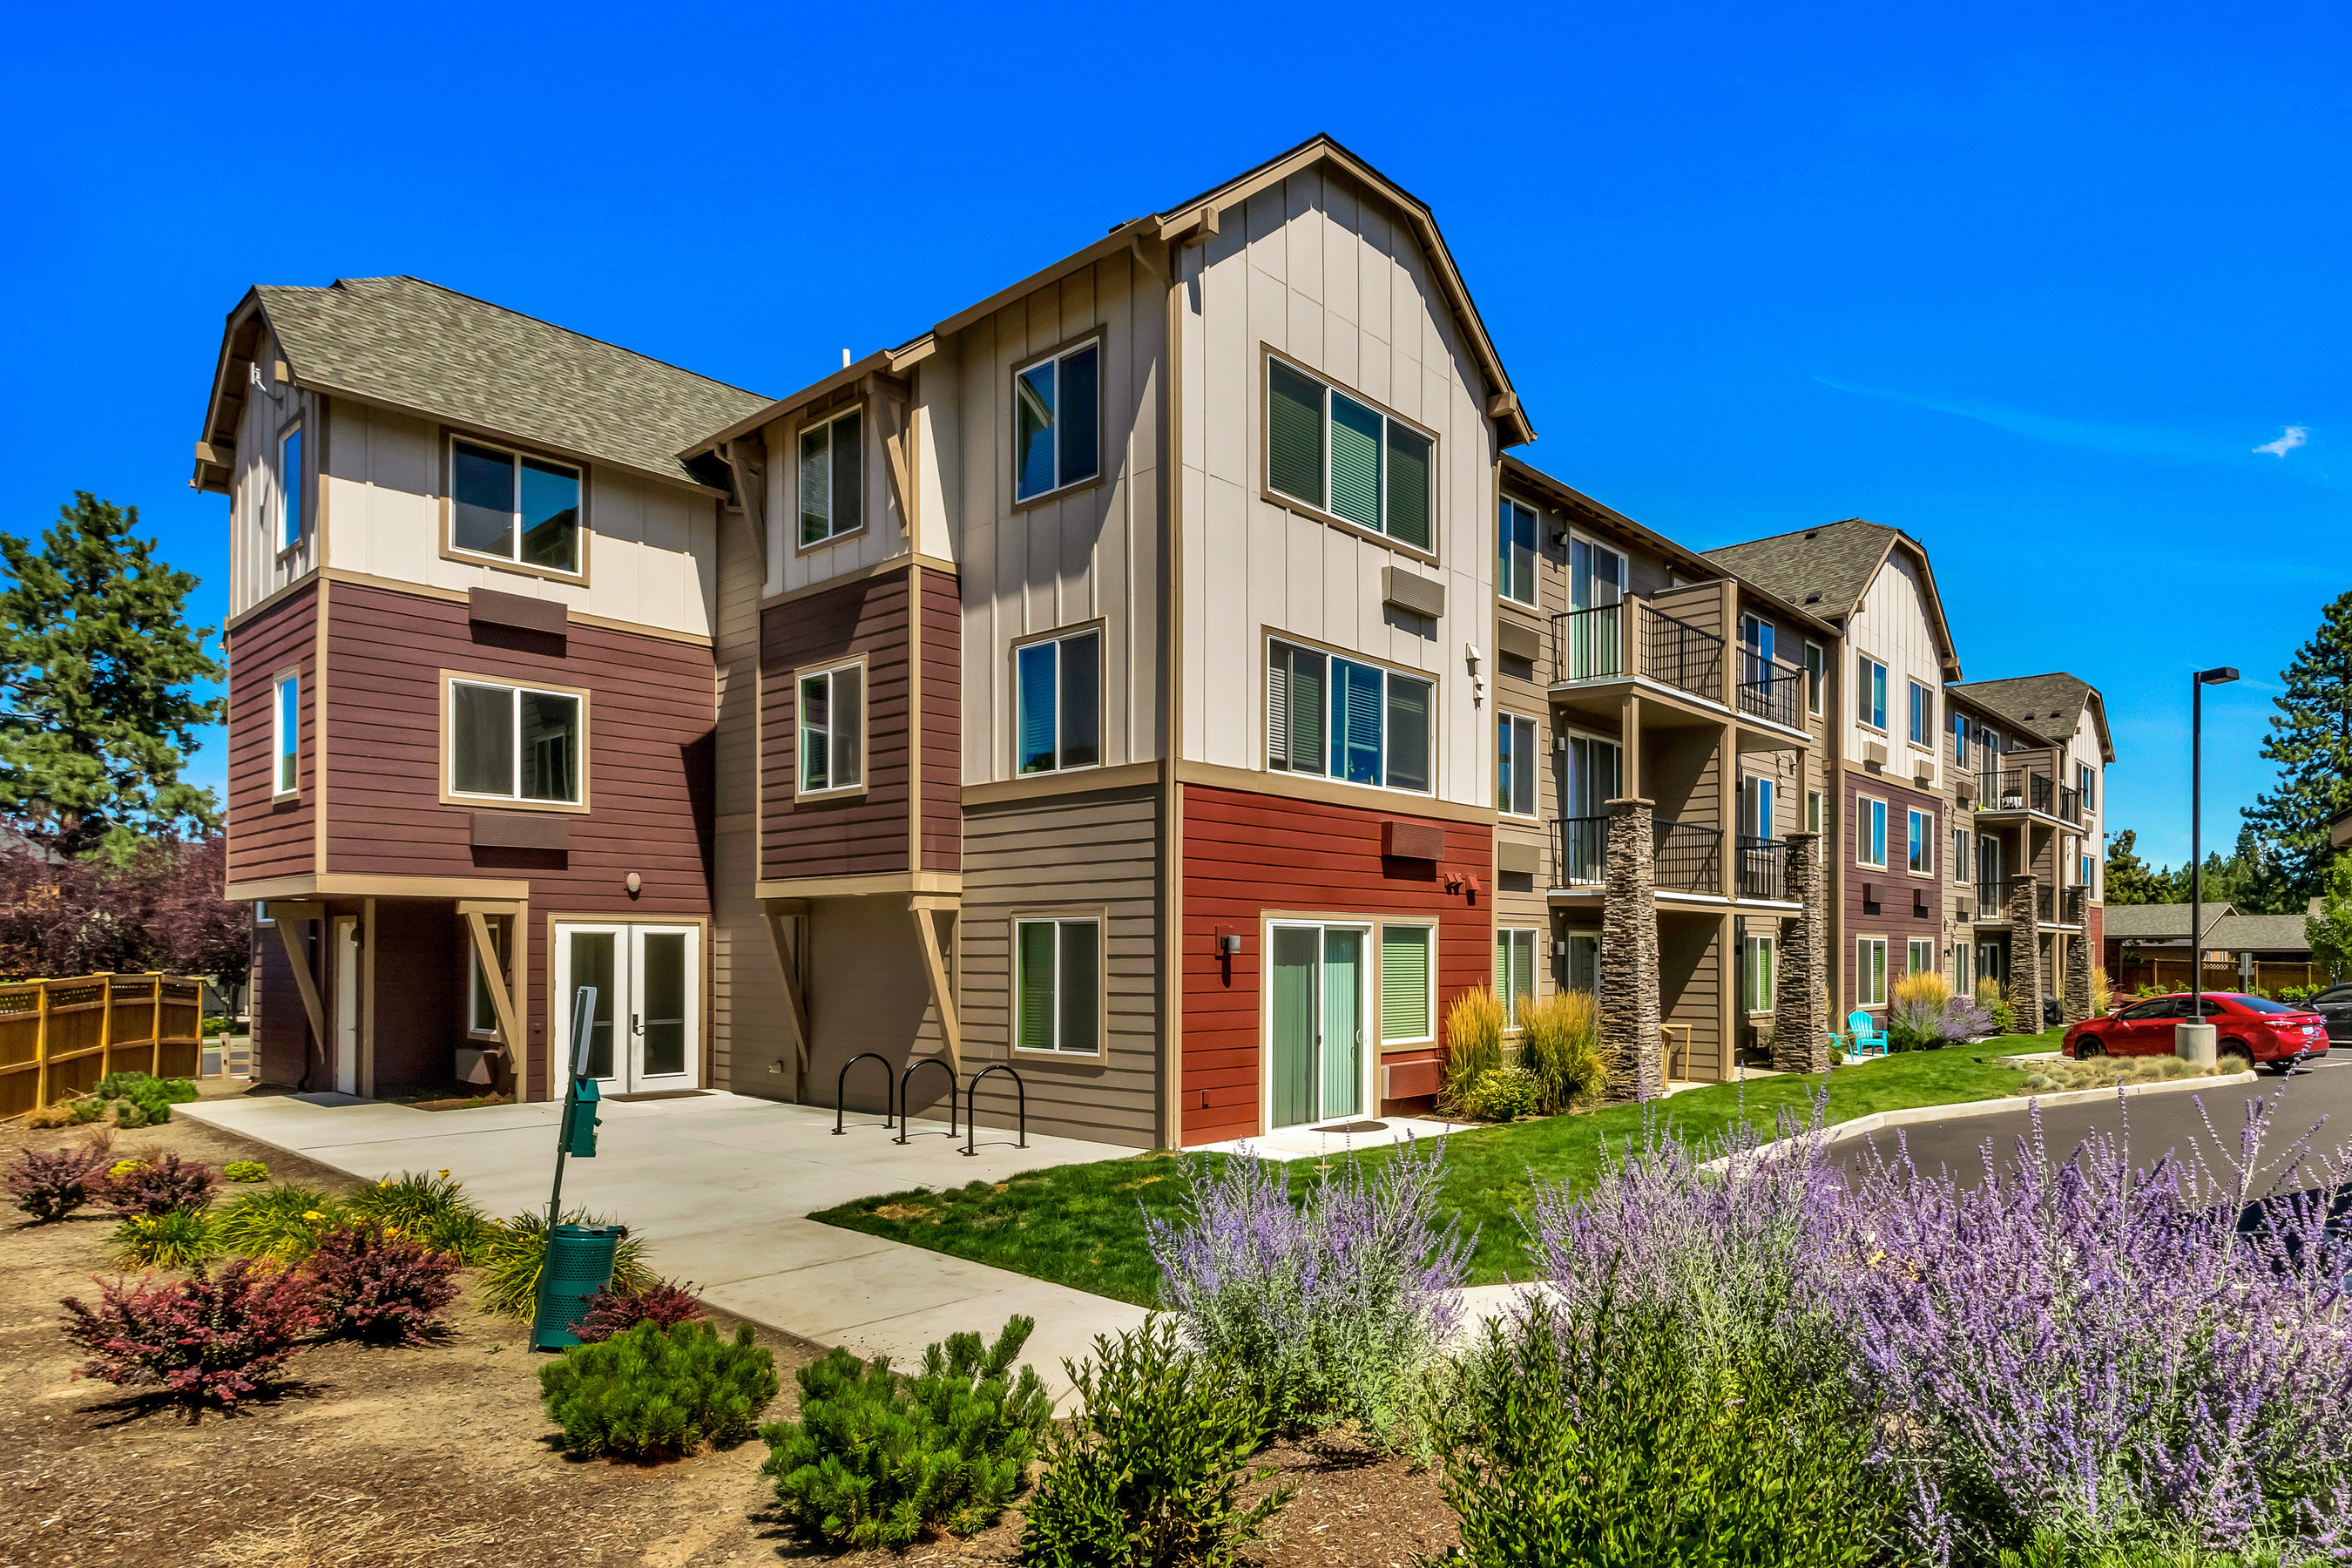 Security Properties Acquires 205-Unit Outlook at Pilot Butte Luxury Apartment Community in Bend, Oregon for $52 Million